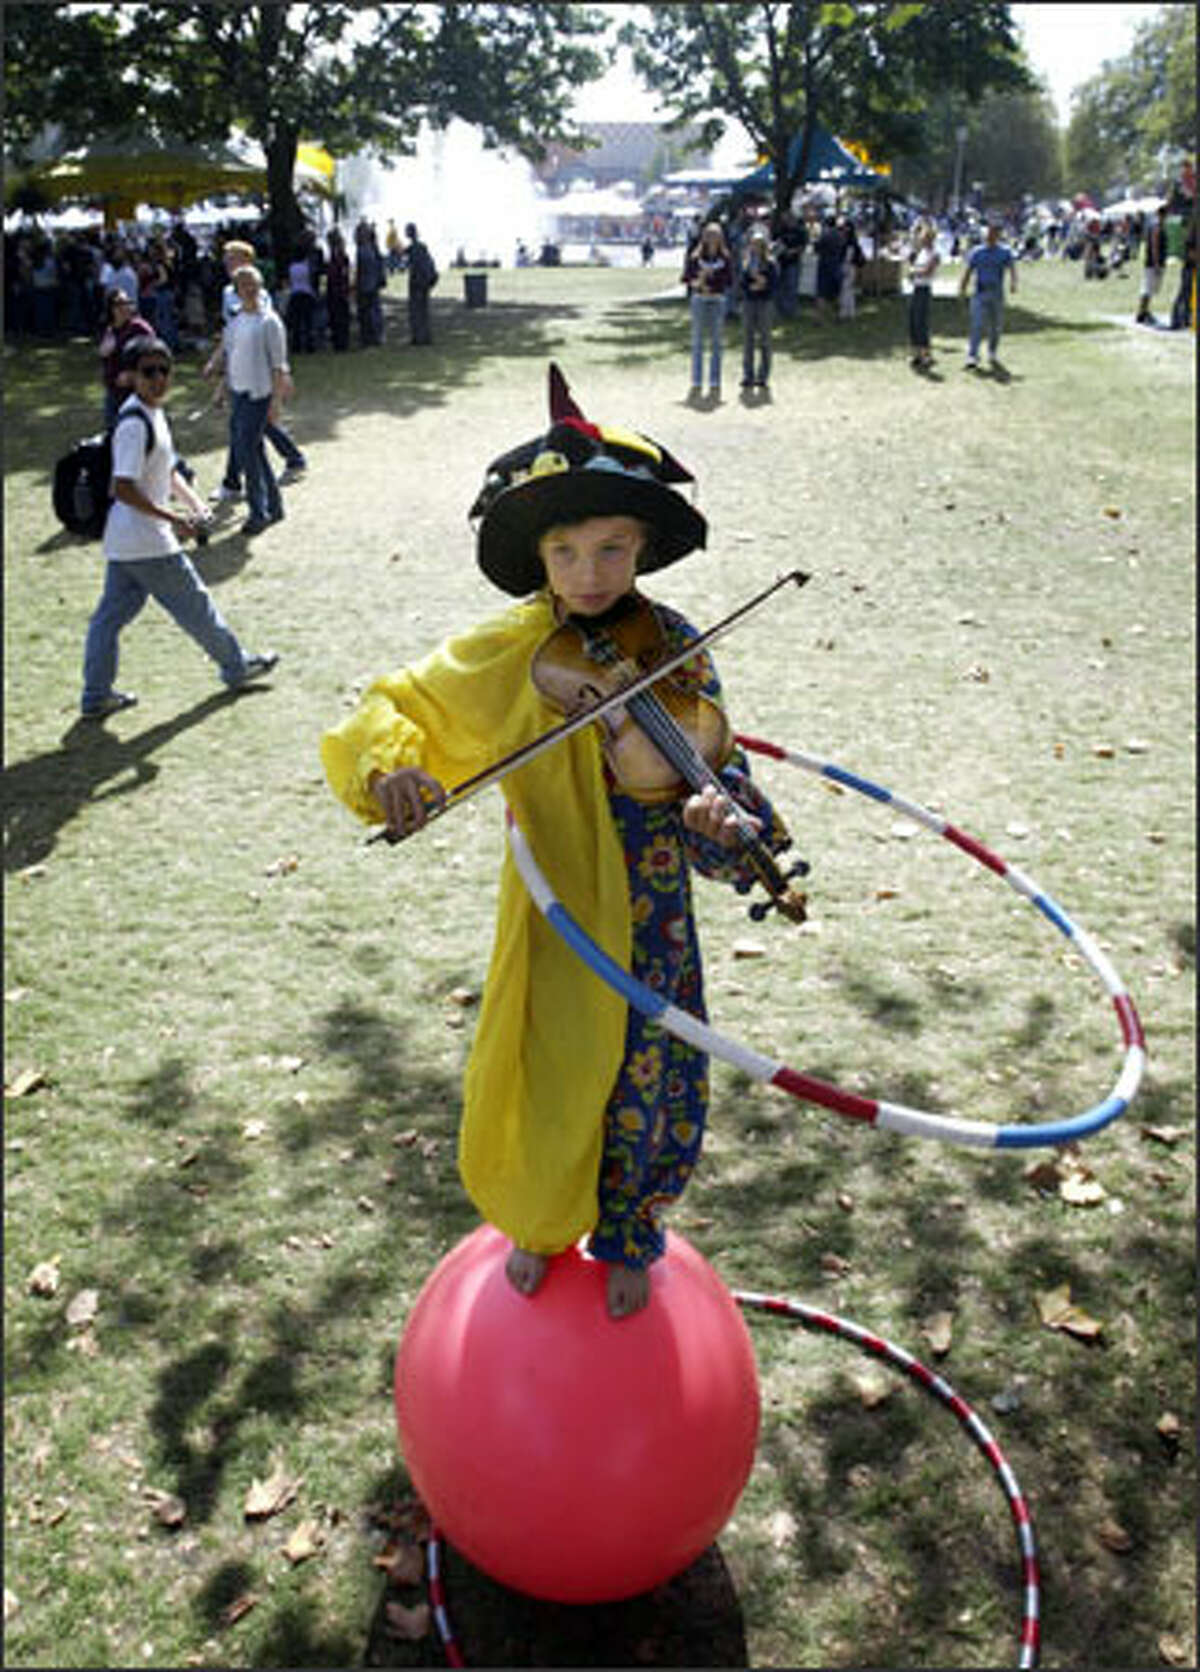 Balancing on a rubber ball and twirling a hula hoop, 9-year-old Una Bennett plays the violin at Bumbershoot. She and her juggling brother, Ezra Weill, 12, can earn $200 to $300 a day.